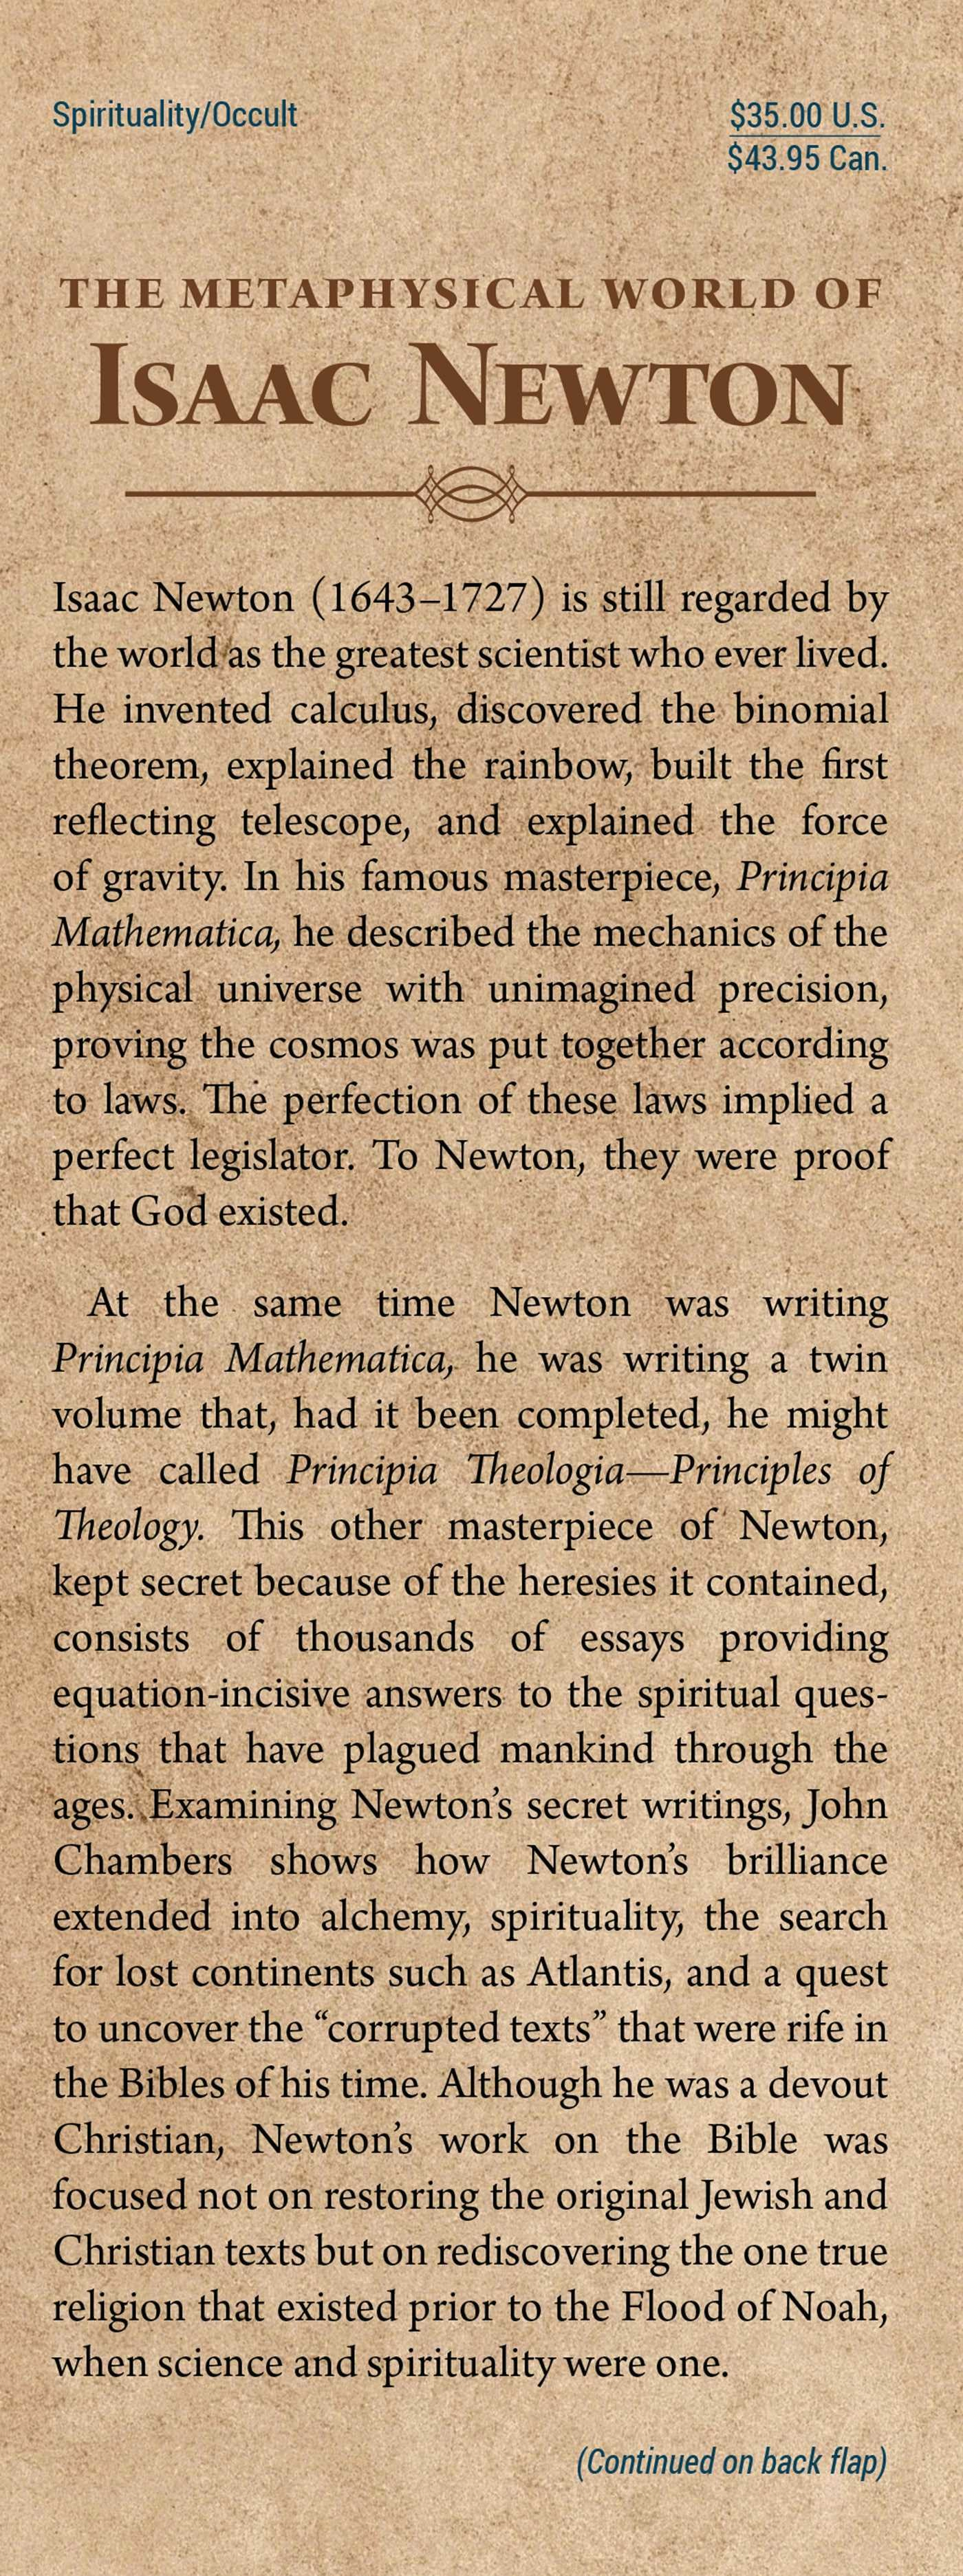 The metaphysical world of isaac newton 9781620552049.in01